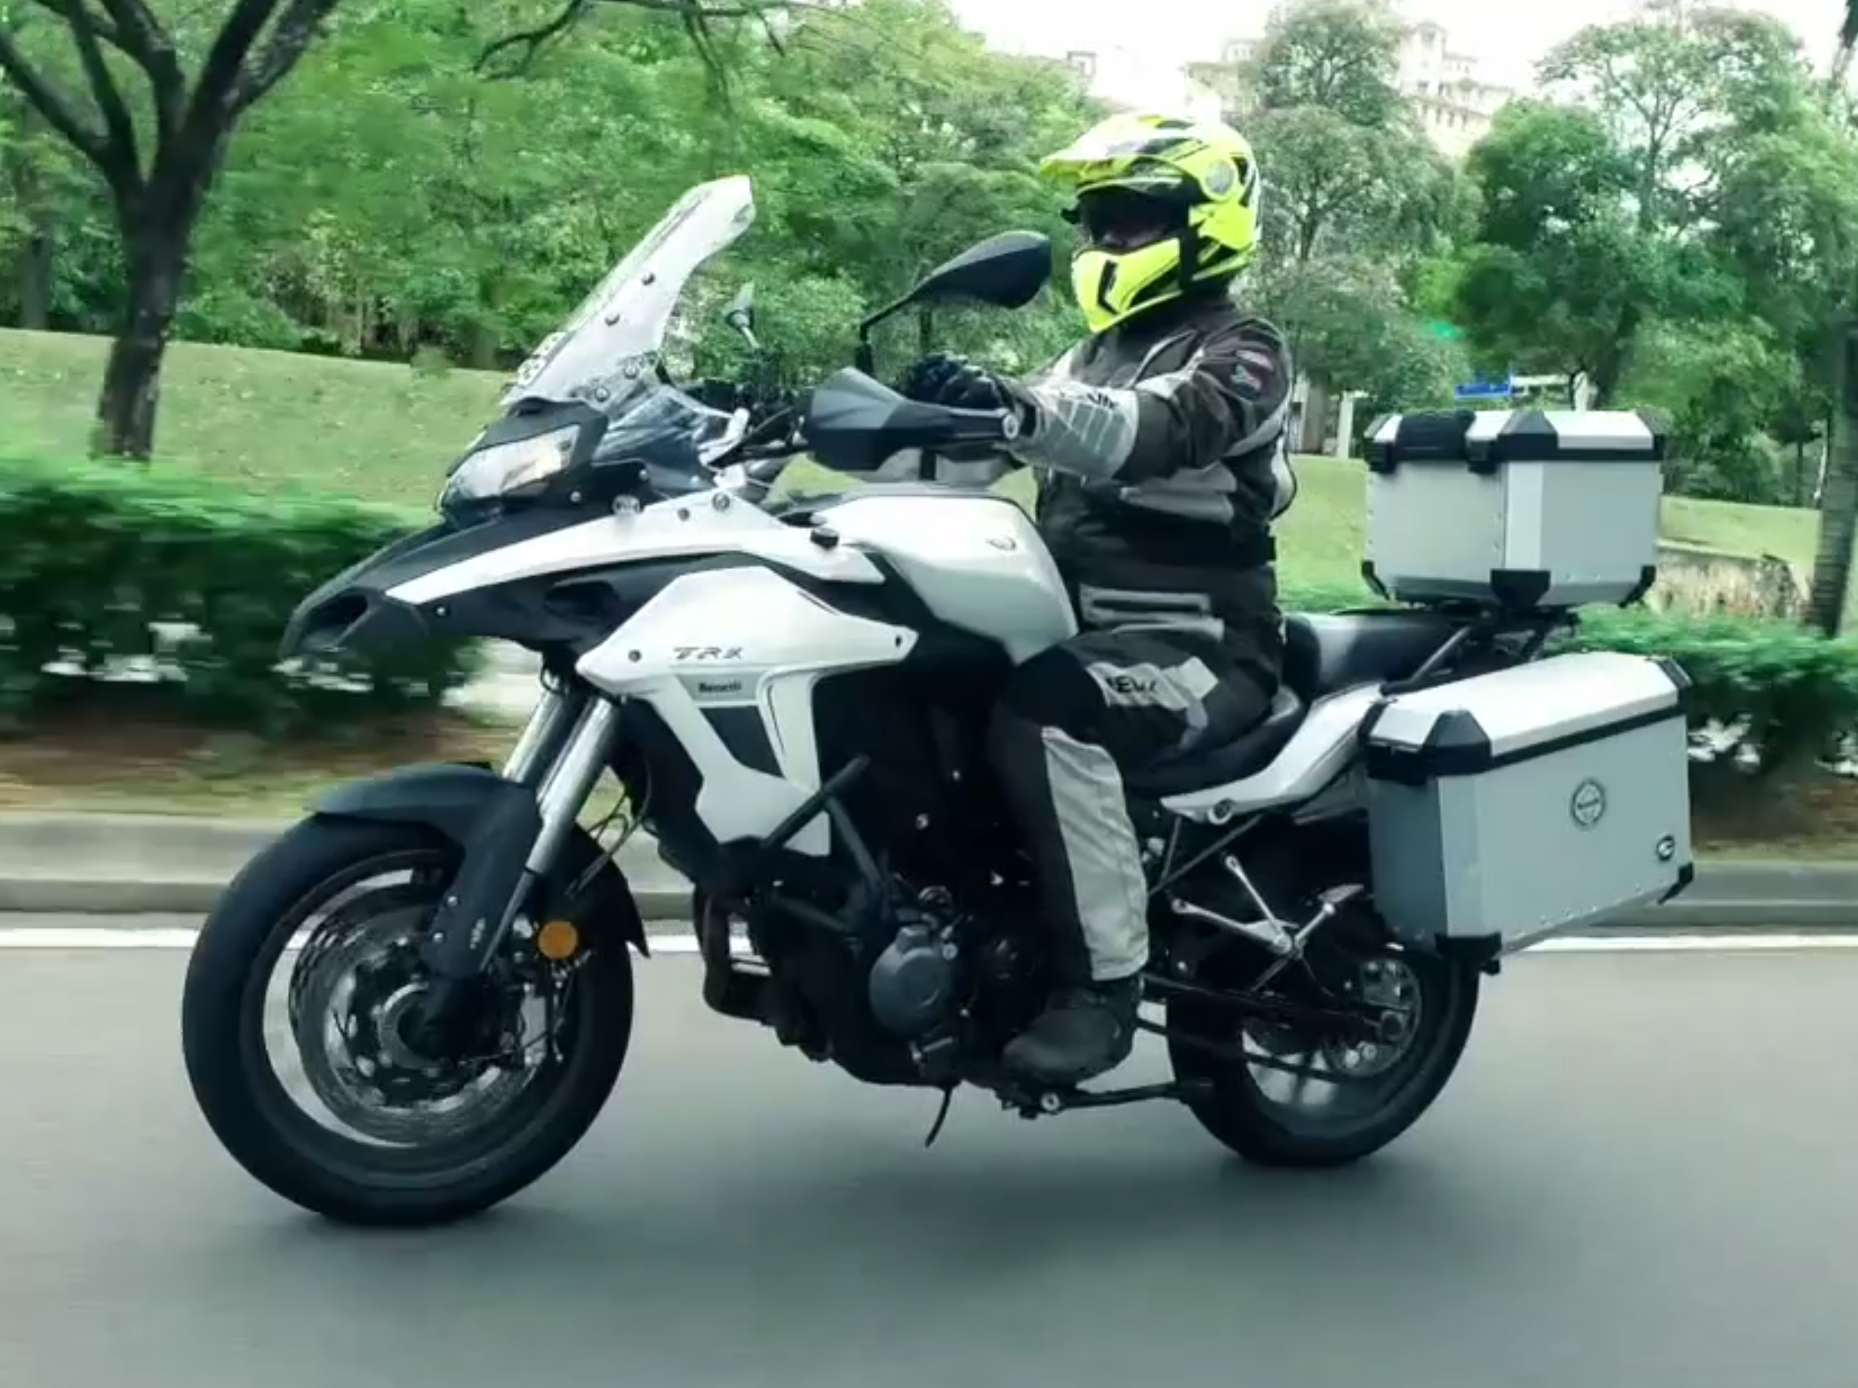 Benelli Trk 502 Test Amp Review Touring On A Budget